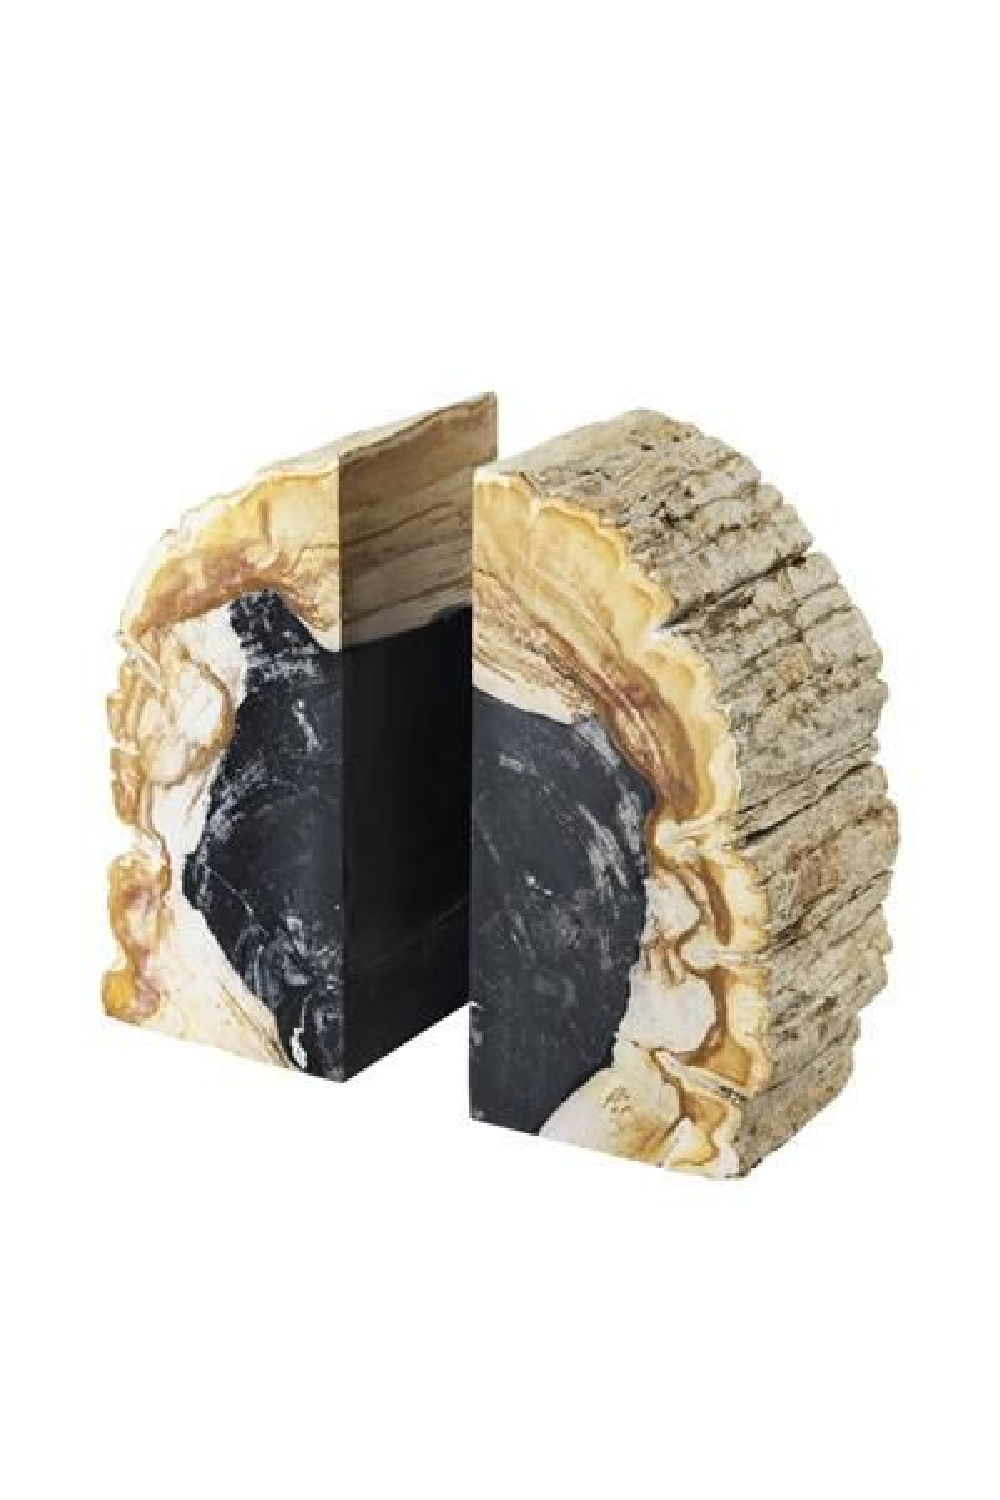 Petrified Wood Bookends | Eichholtz Opia